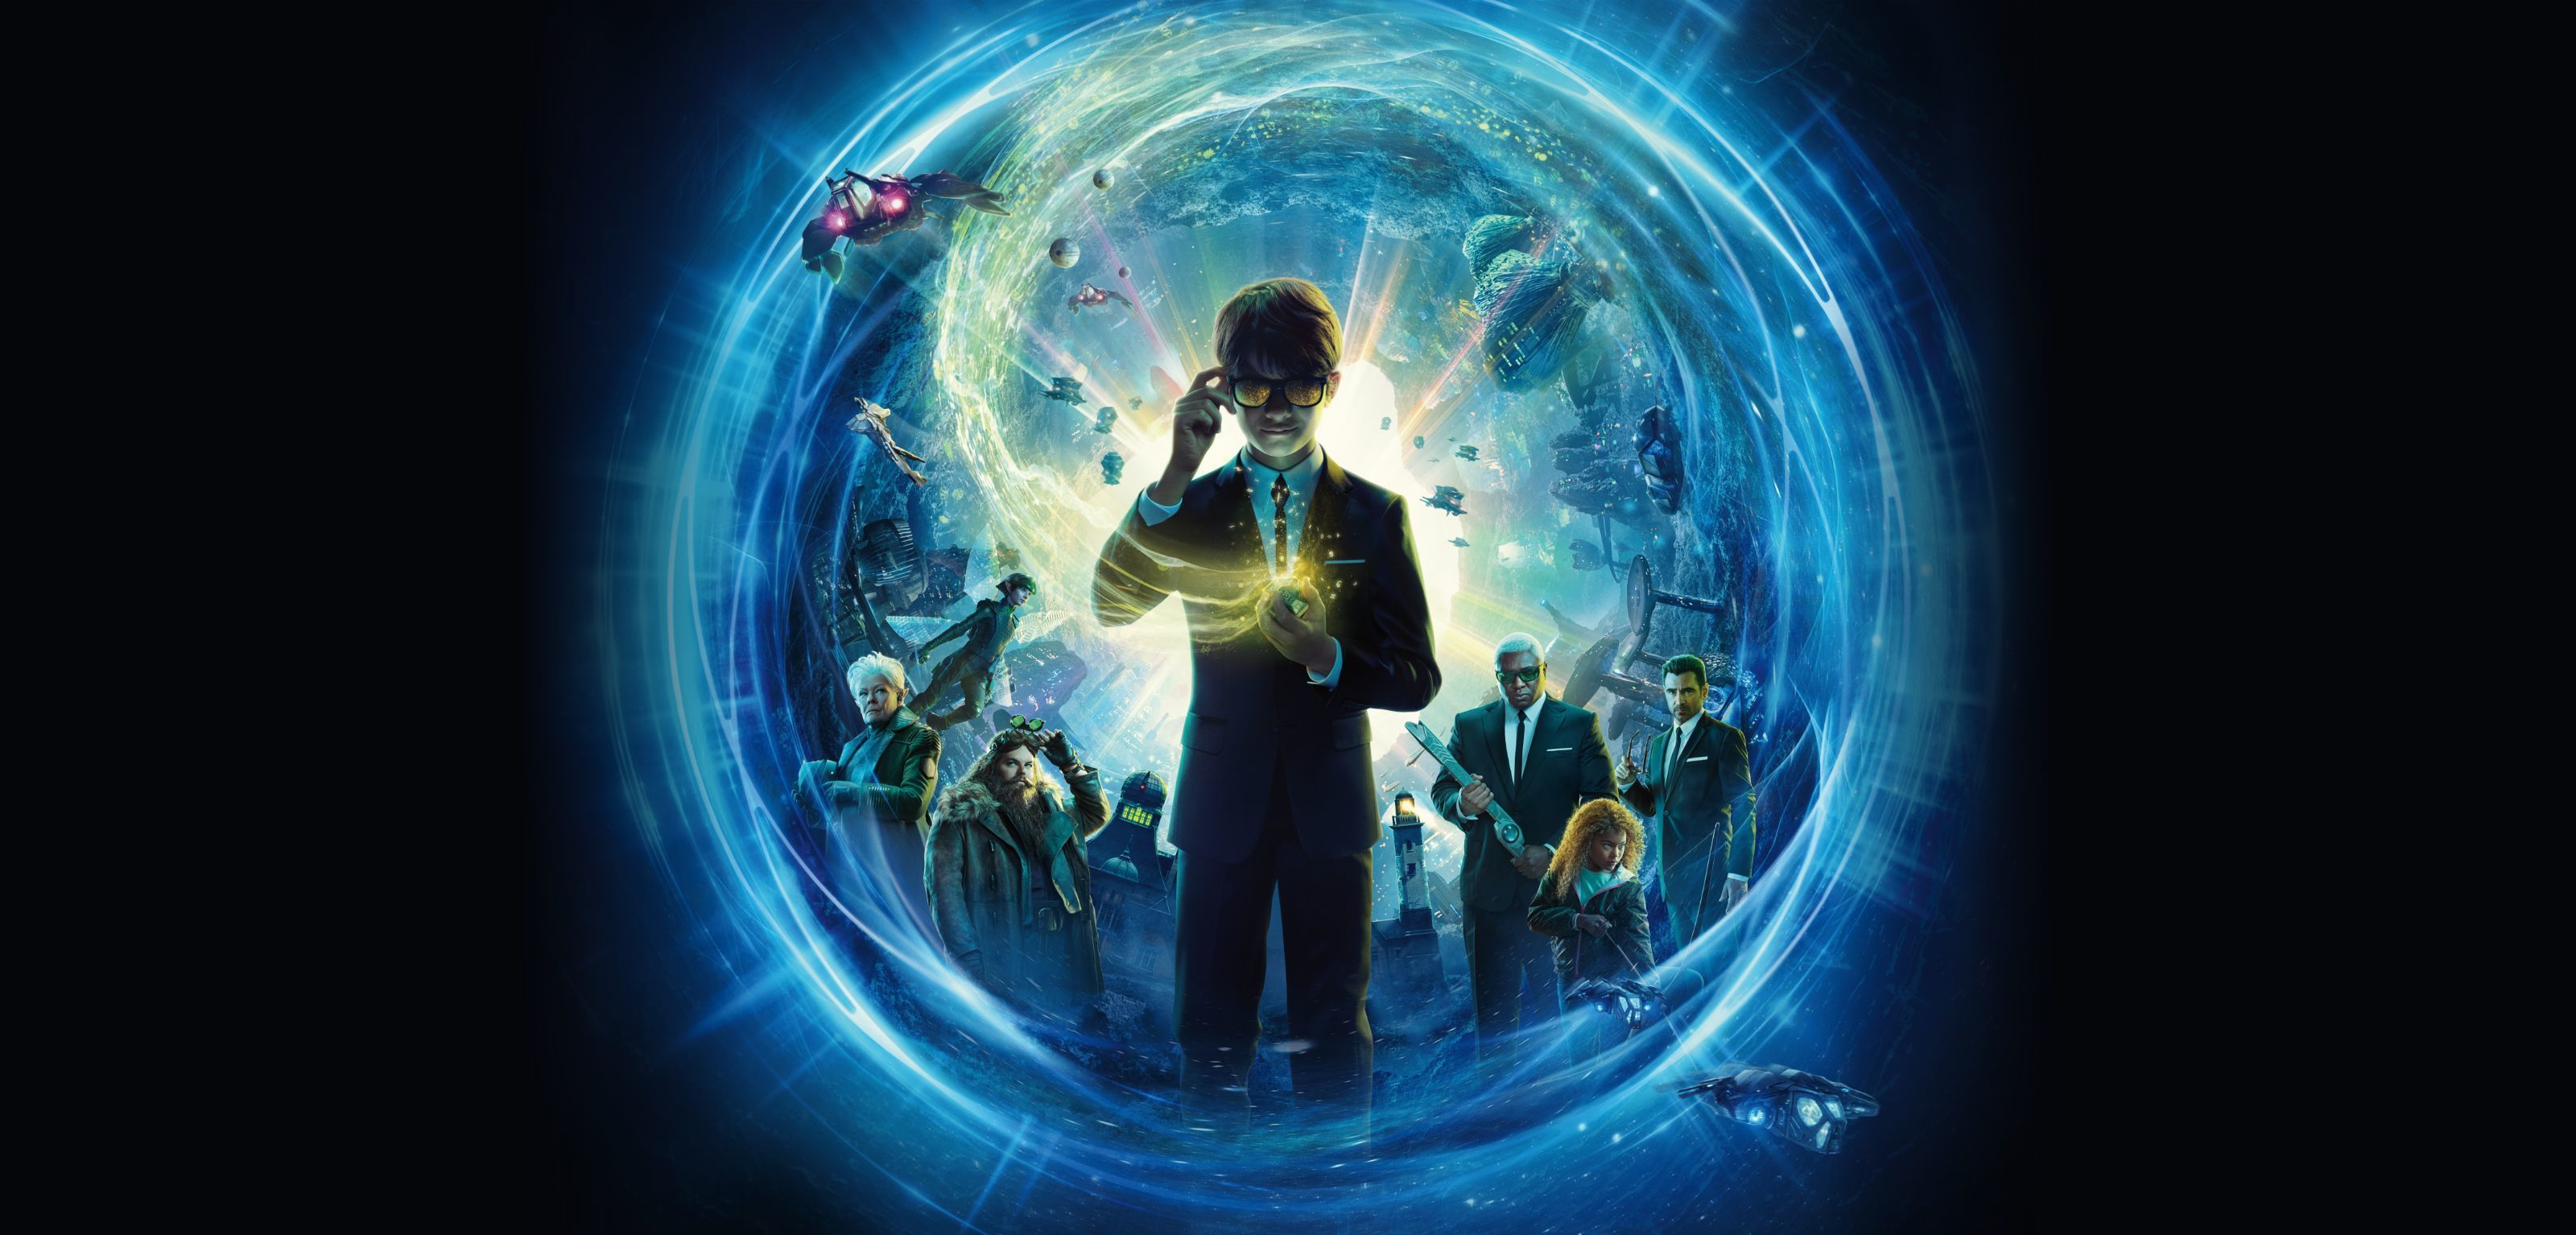 A poster from the film Artemis Fowl